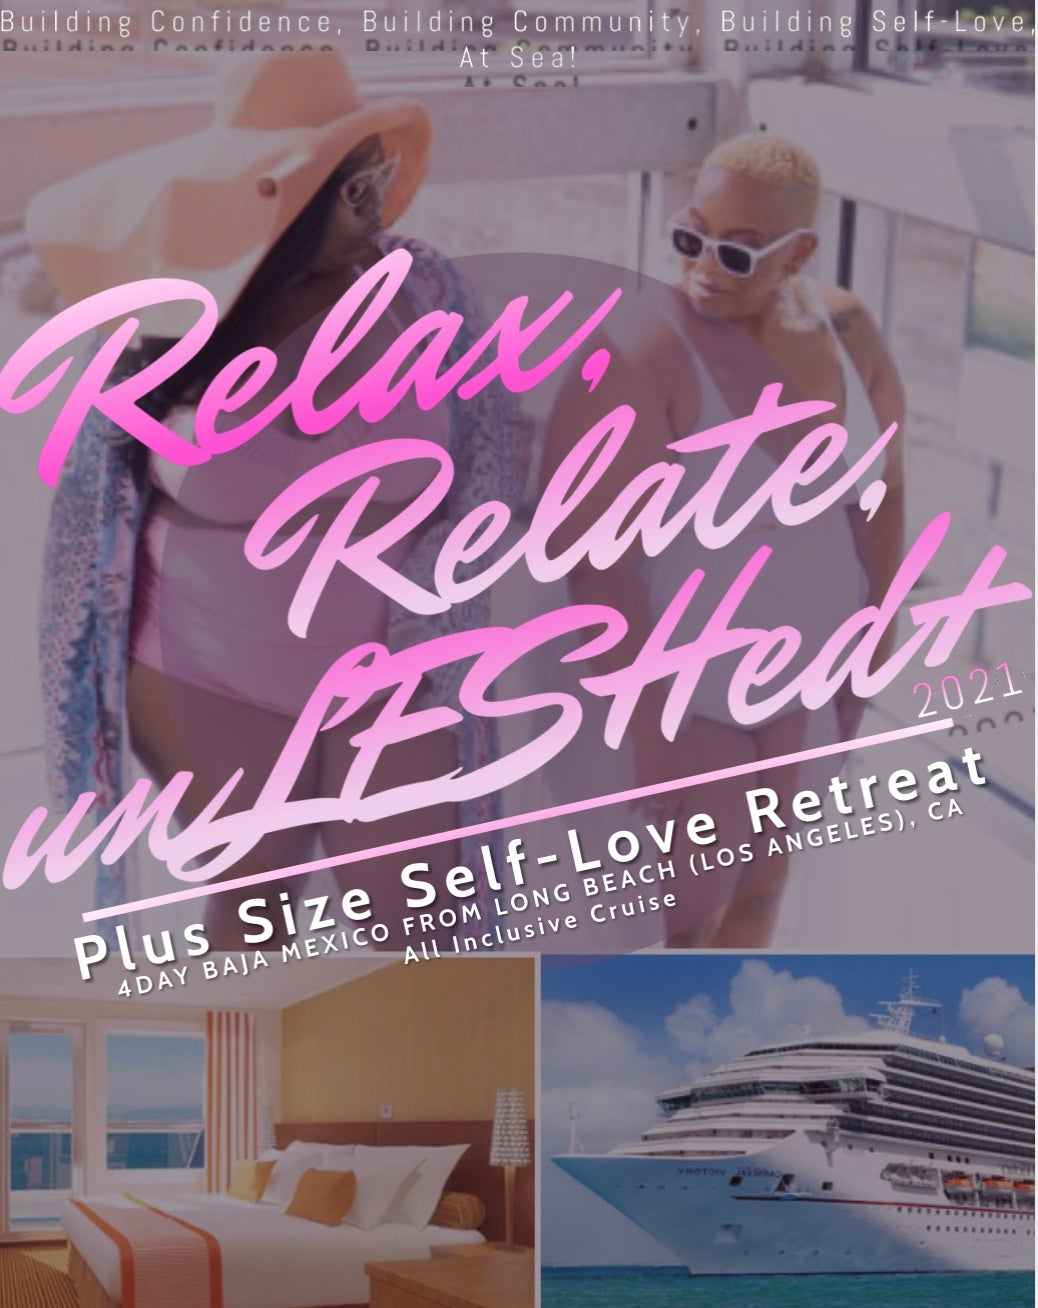 Image of Relax, Relate, unLESHed+